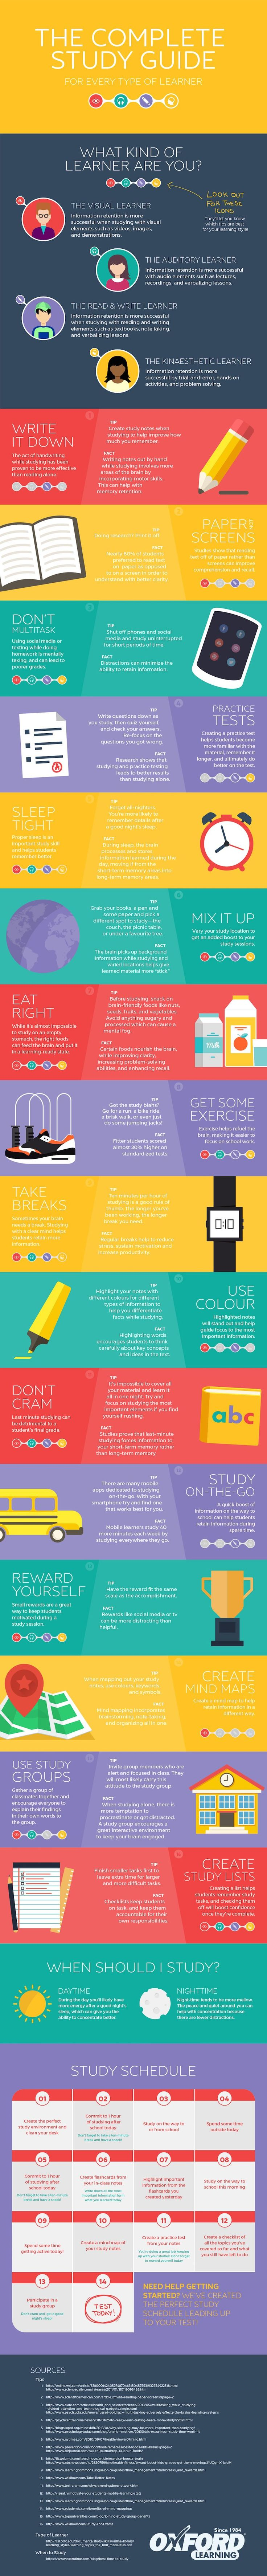 The infographic from Oxford Learning will let you find beststudy techniques foryour learning style. Everyone learns a bit differently. Being aware of…